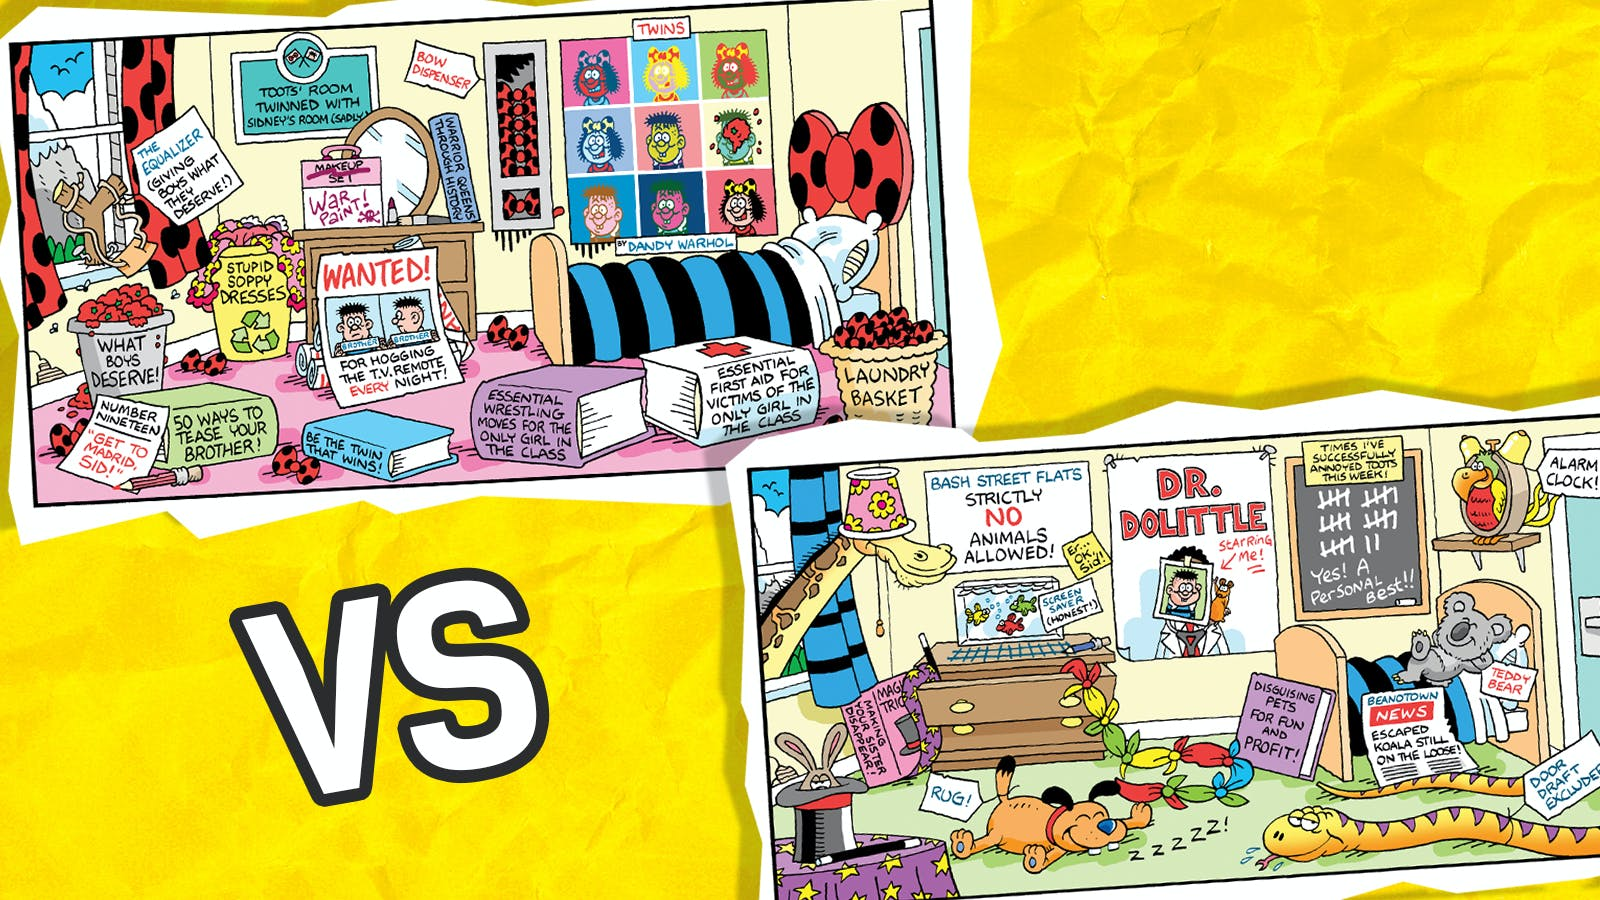 Head2Head - Toots v Sidney - No Brother's Allowed Bedroom? Or the Pet Animal Paradise?